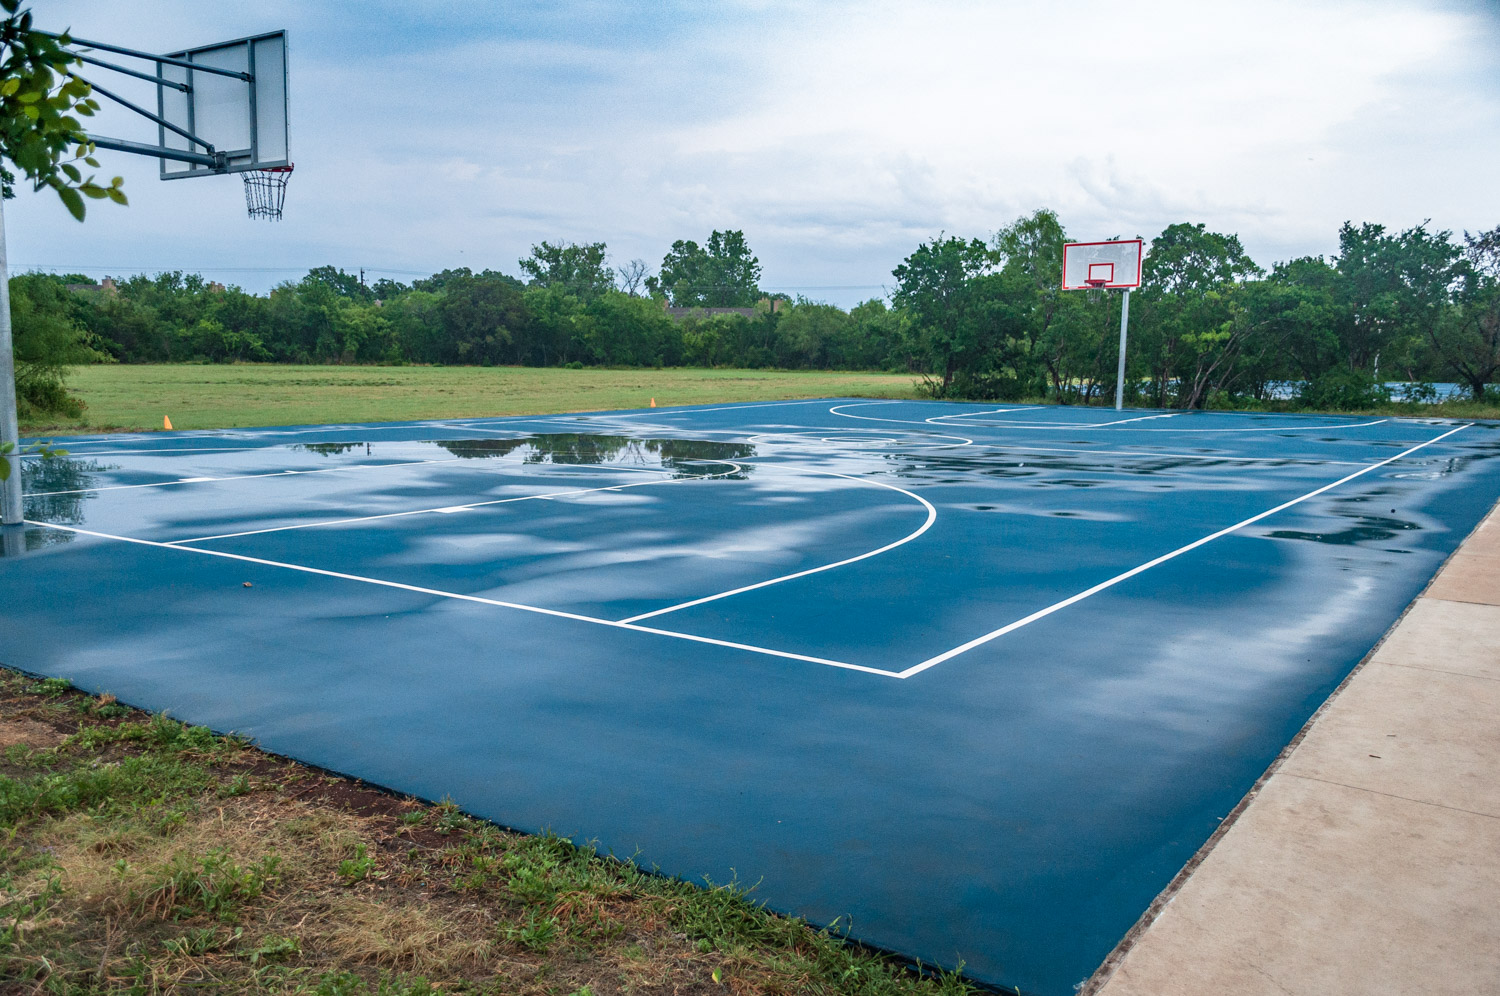 Basketball Courts - There are two basketball courts located in PHP West. They are first come, first serve.